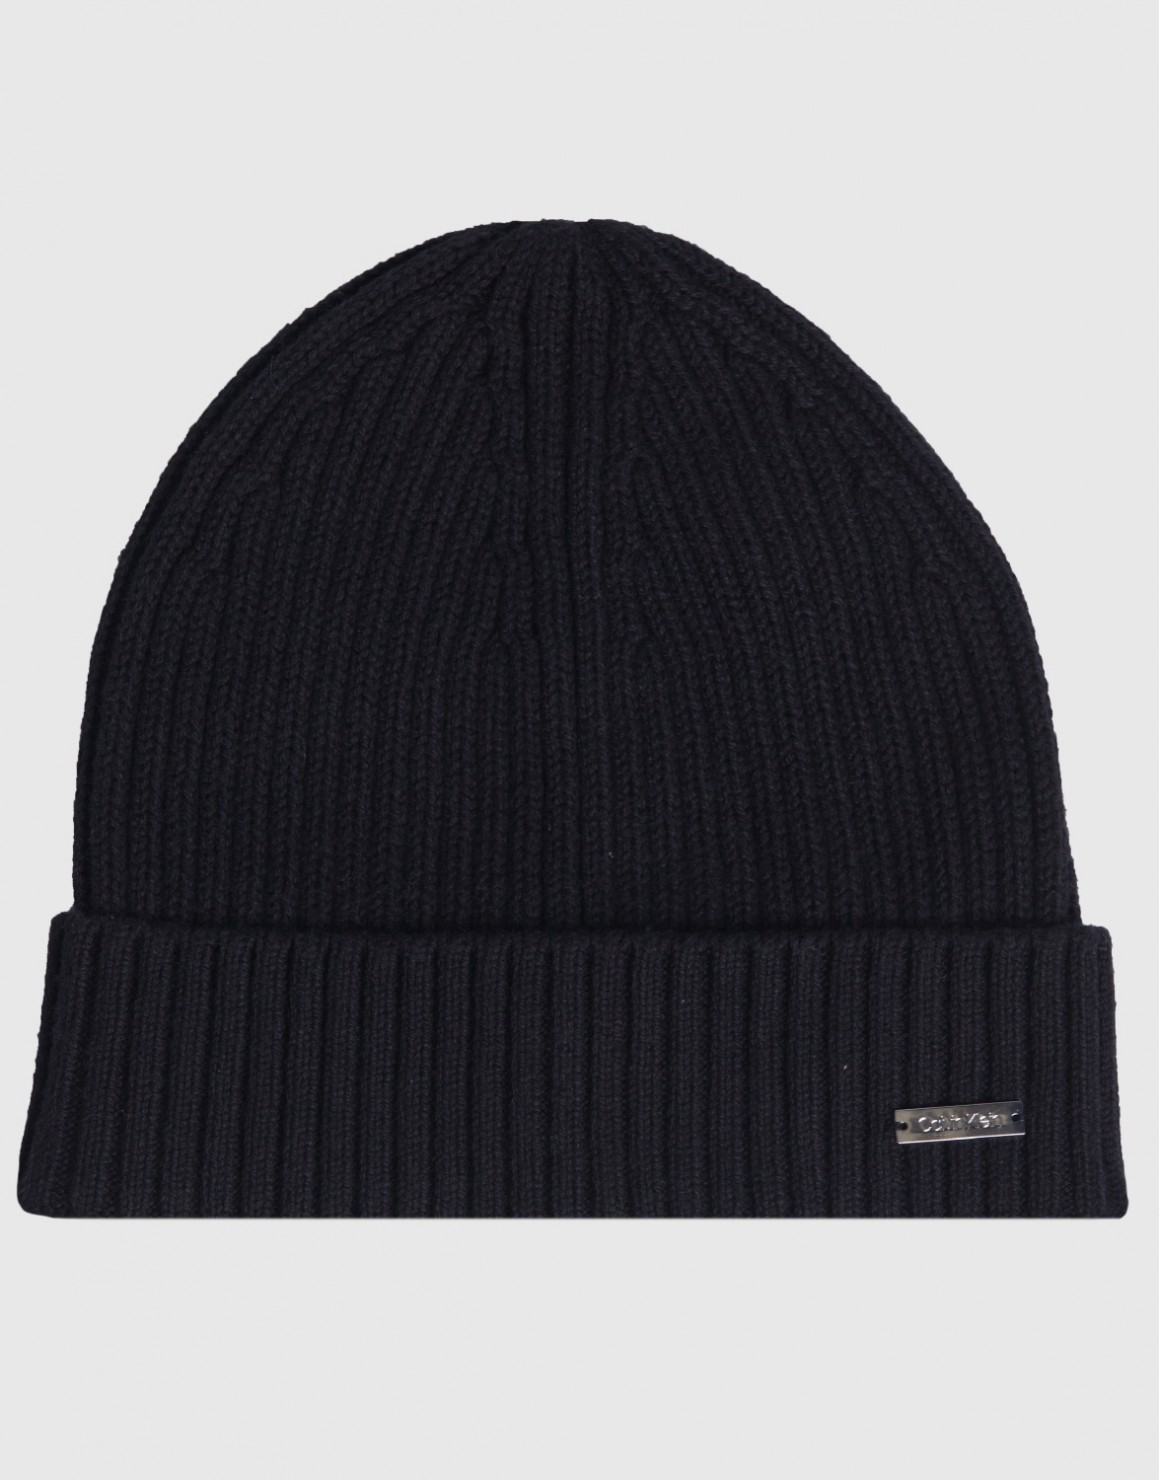 Image of   Basic Rib Beanie